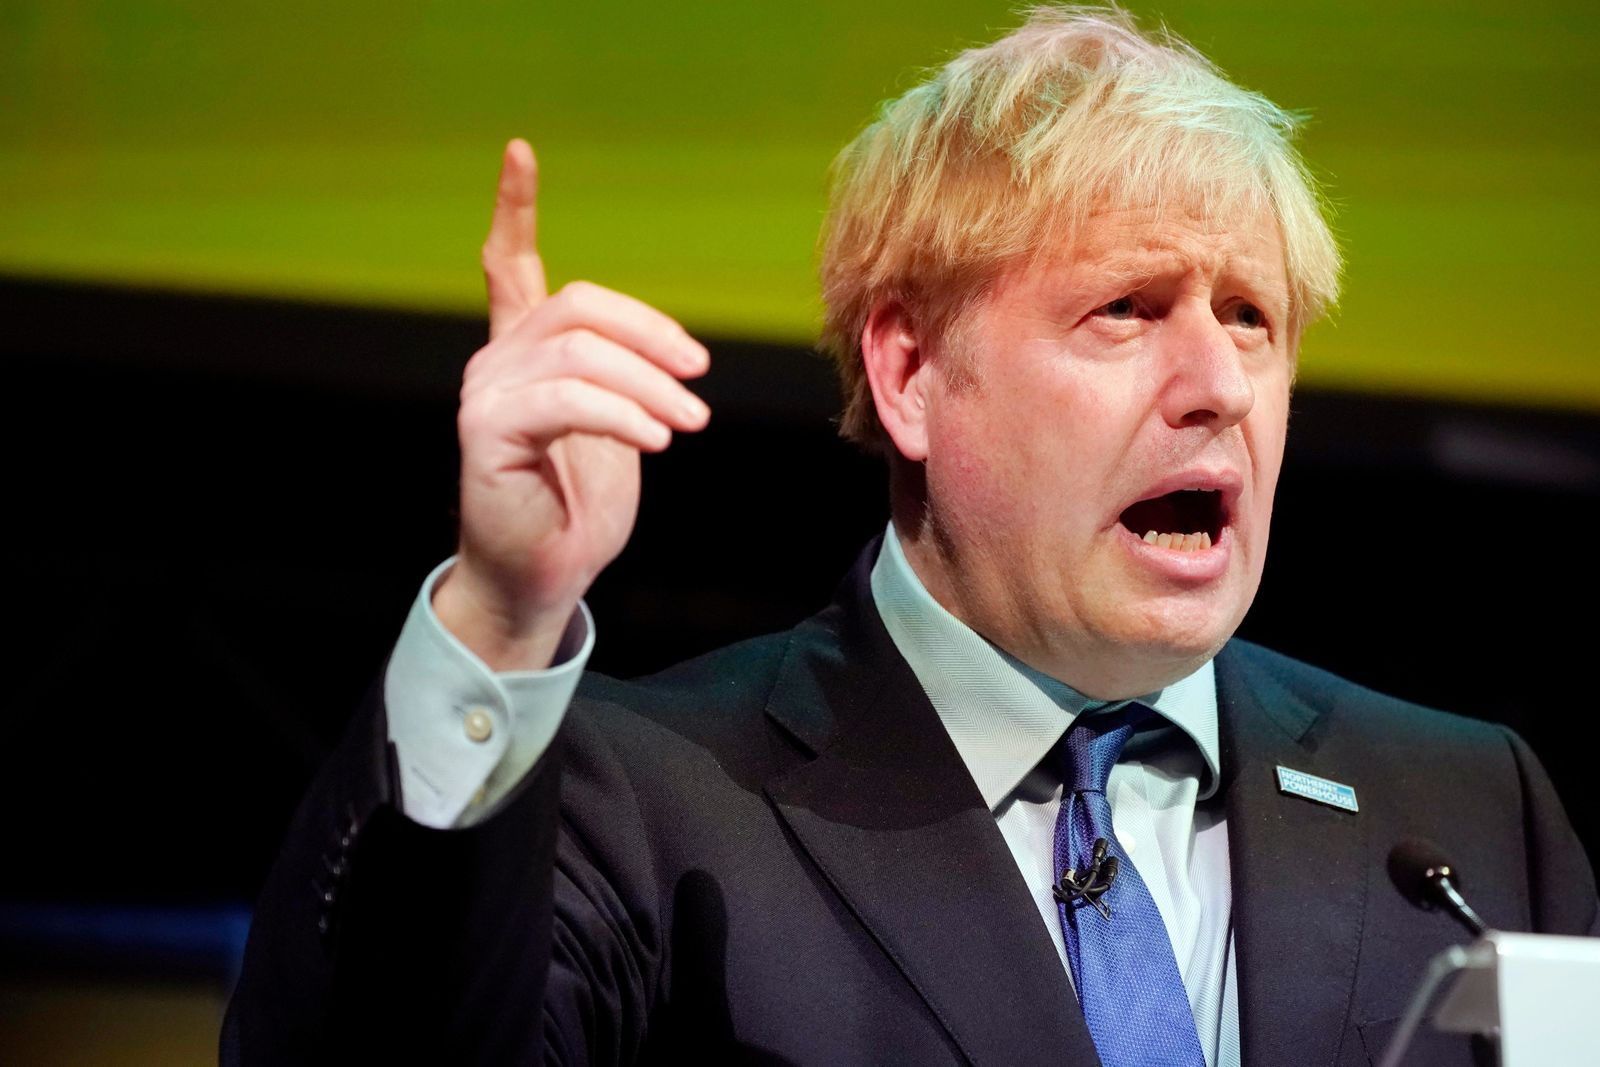 Britain's Prime Minister Boris Johnson makes a speech at the Convention of the North at the Magna Centre in Rotherham, England, Friday, Sept. 13, 2019.{ } (Christopher Furlong/Pool photo via AP)